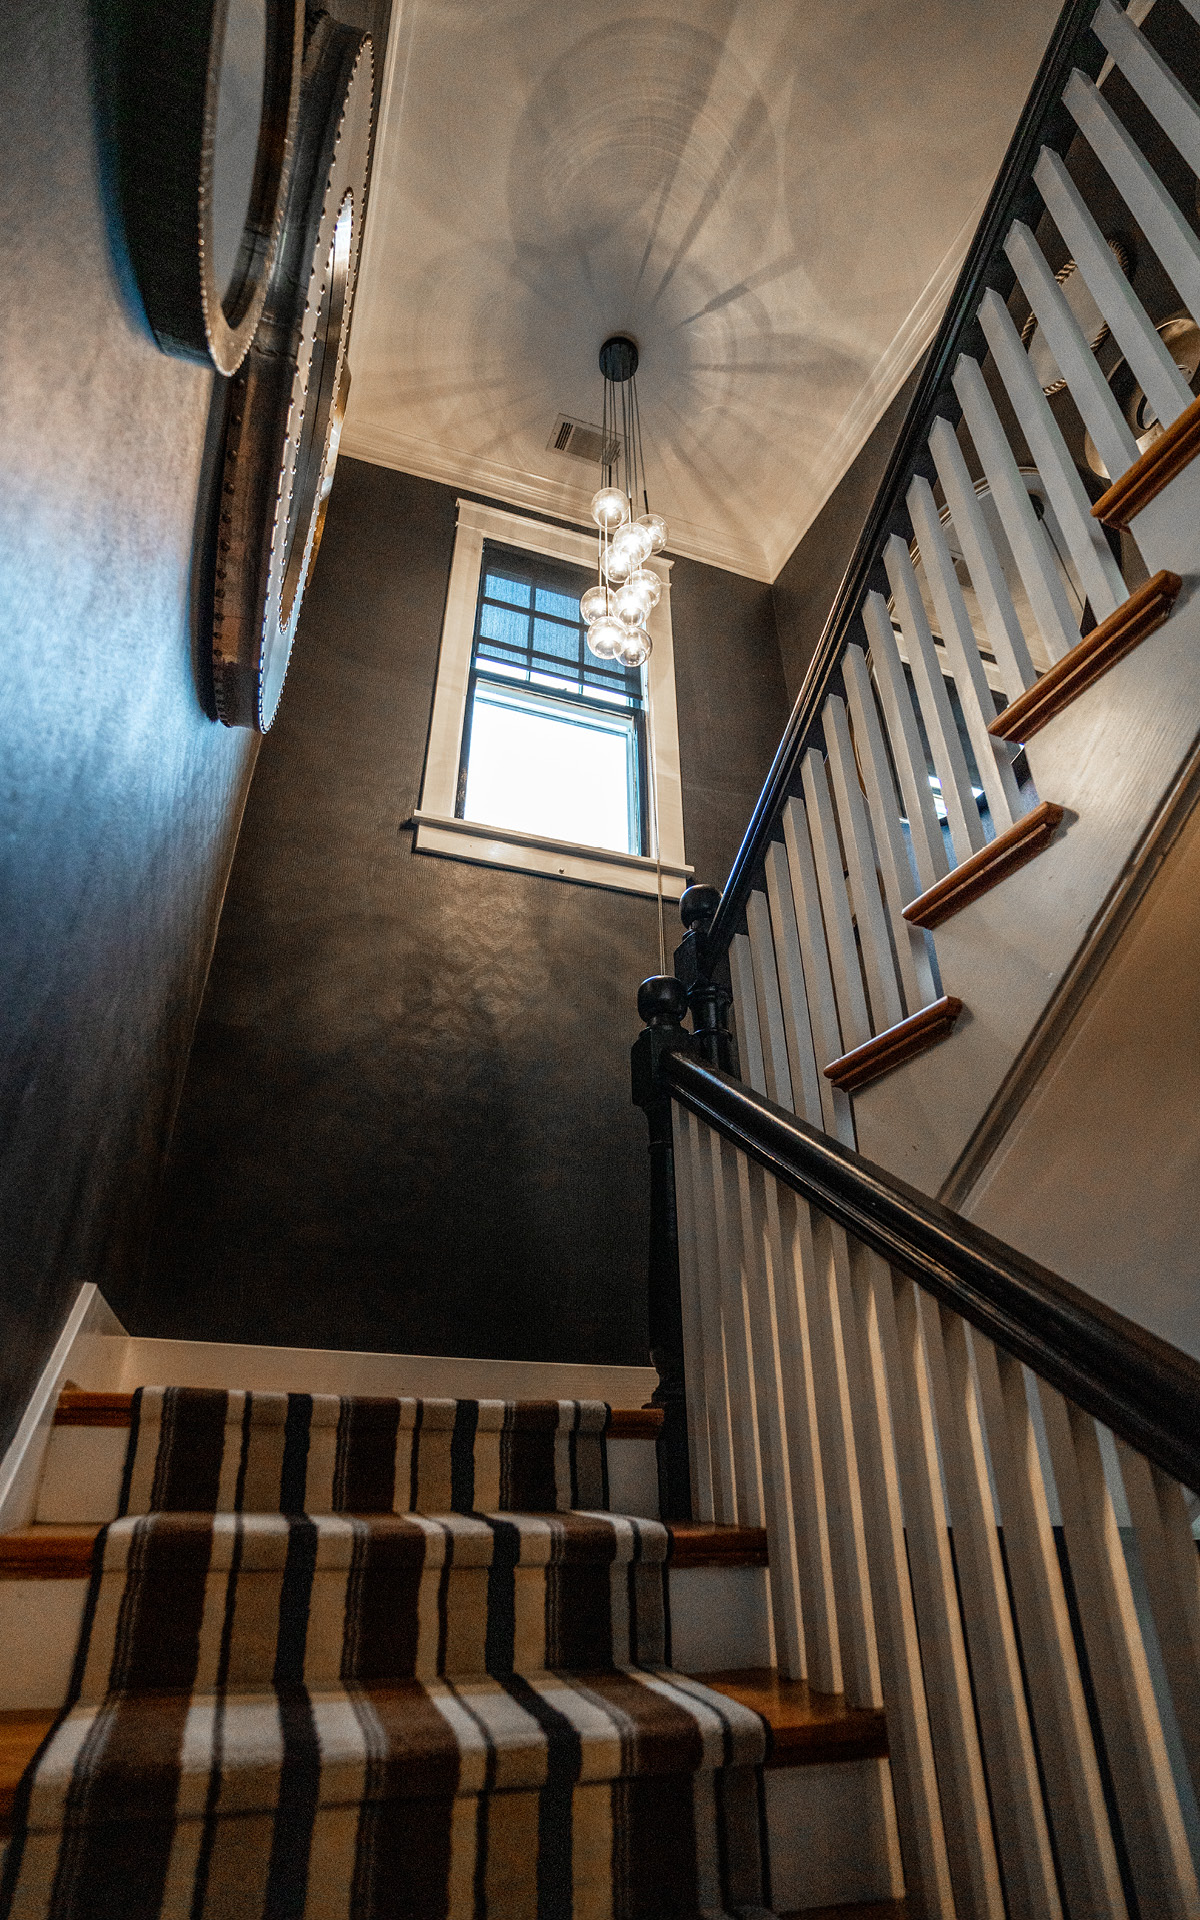 Let's go upstairs!